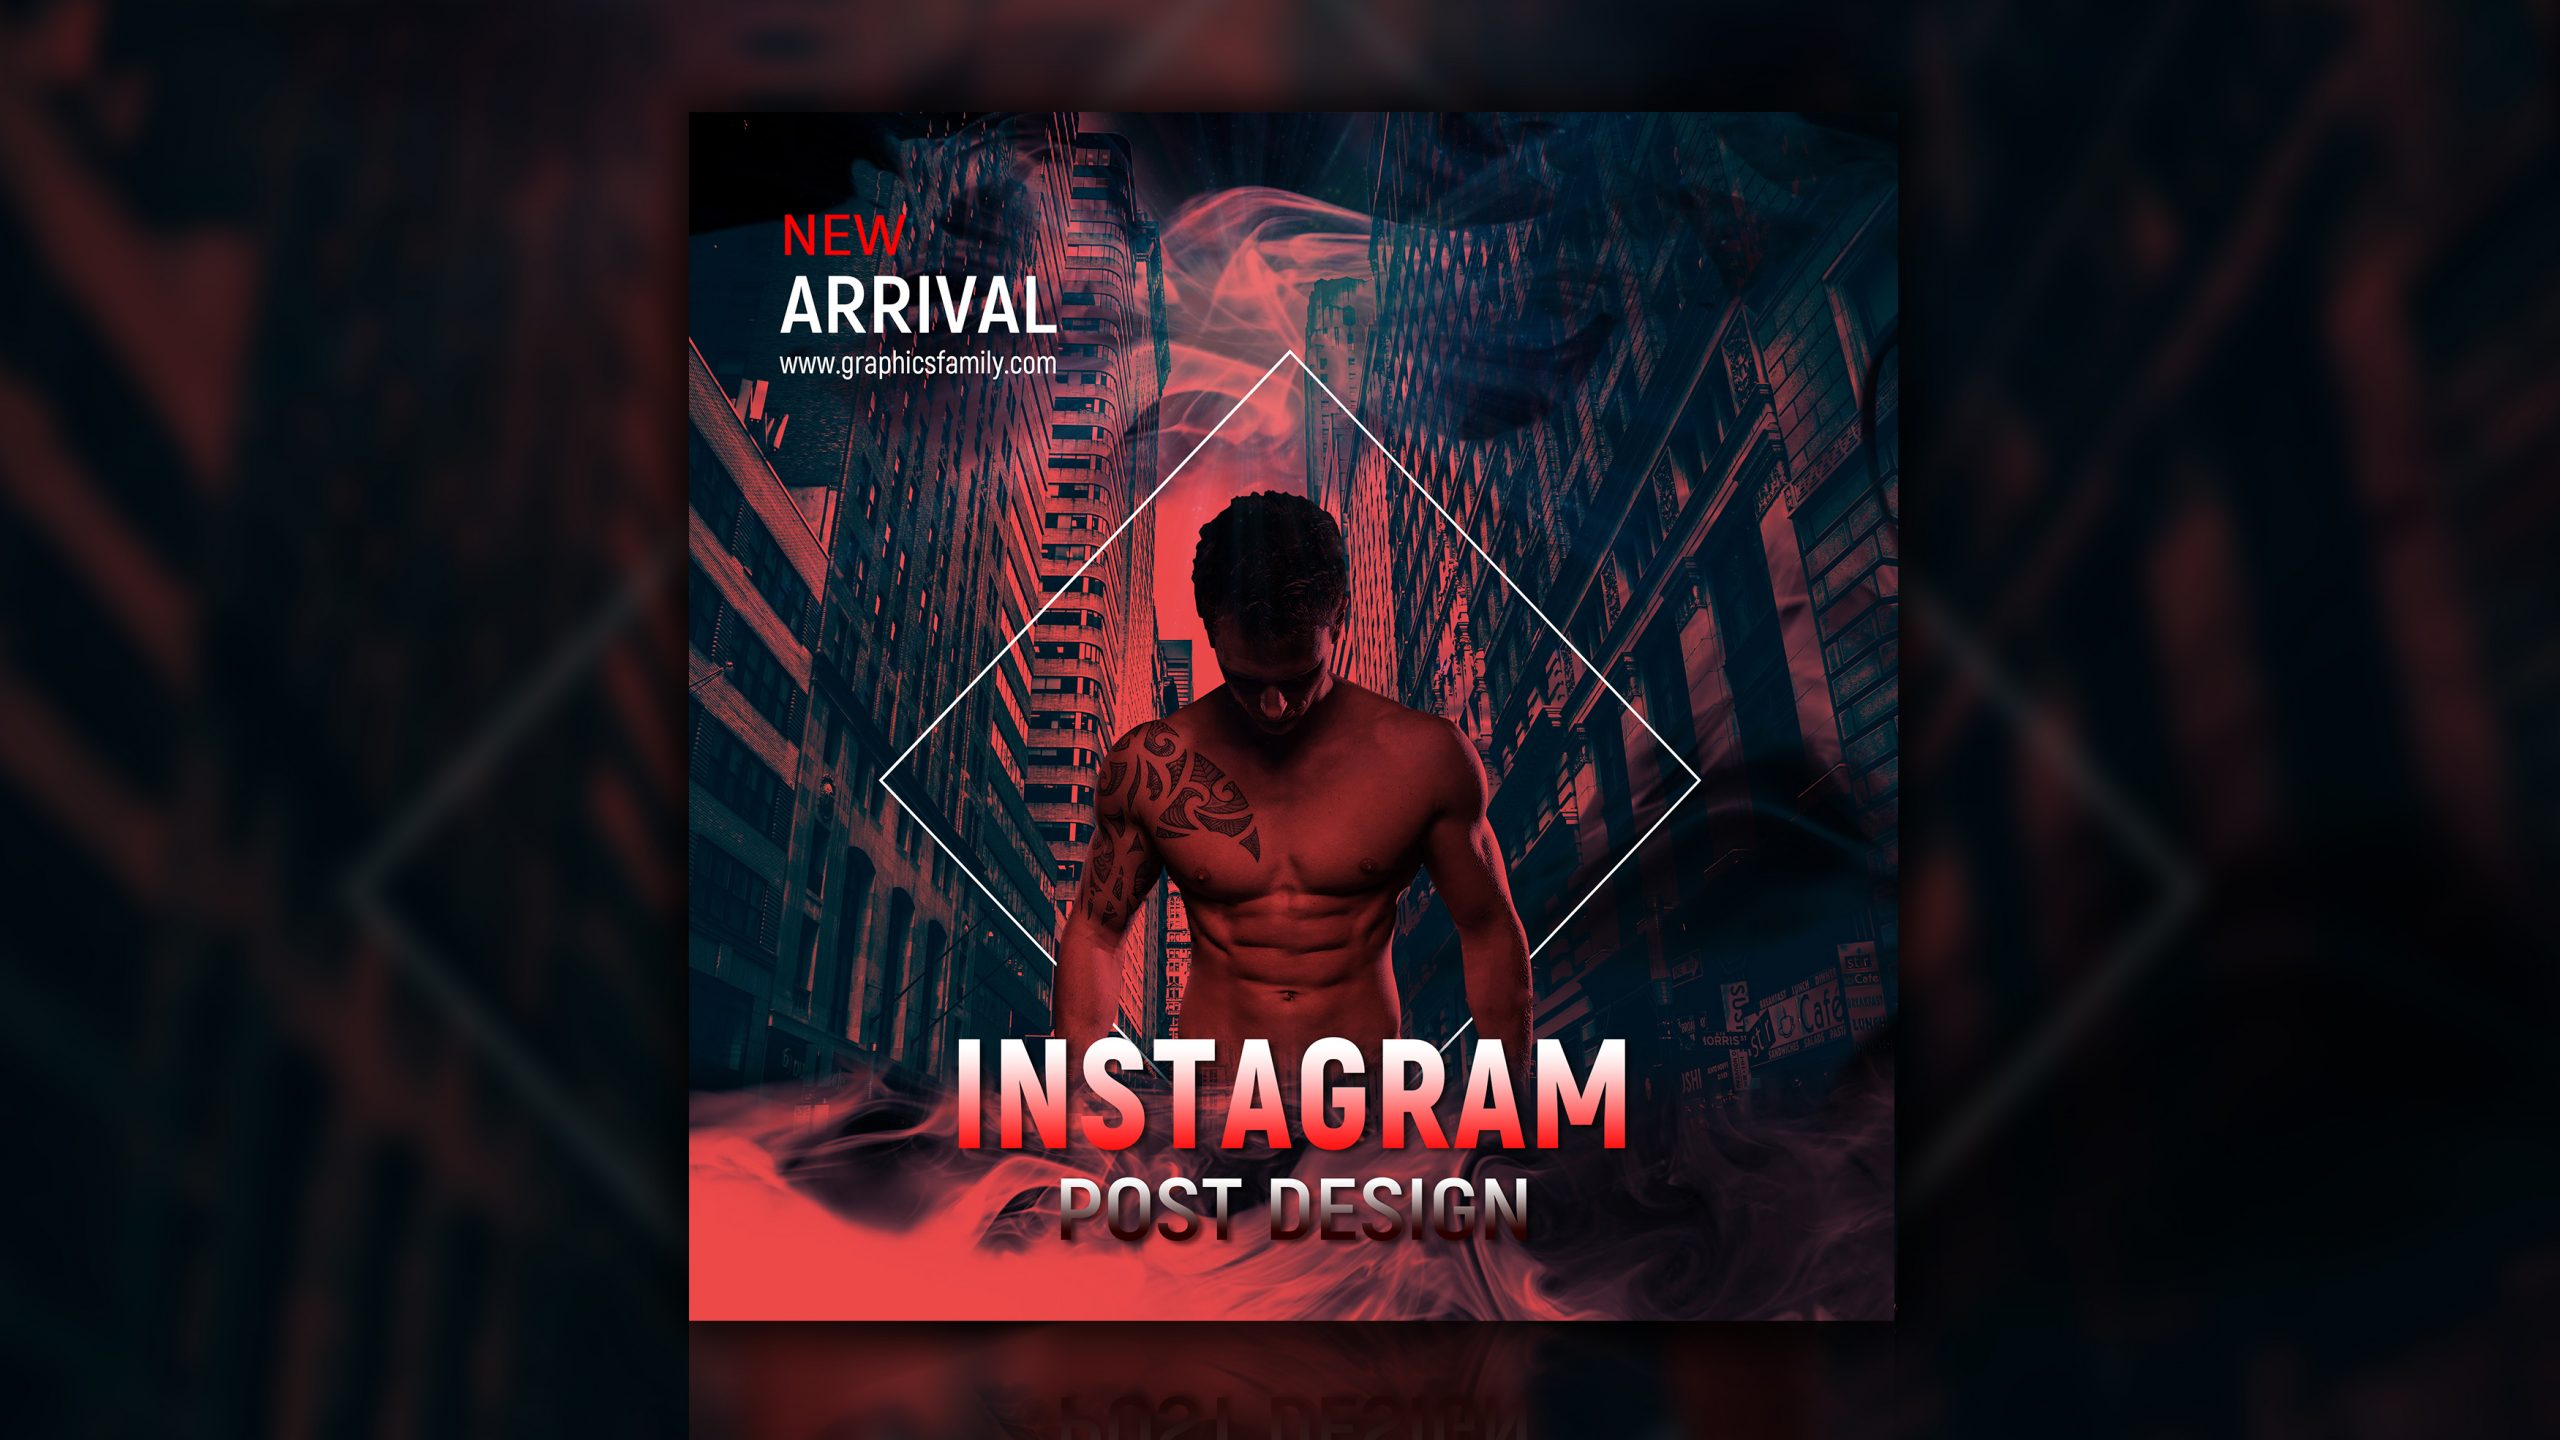 New Arrival Instagram Post Design Download